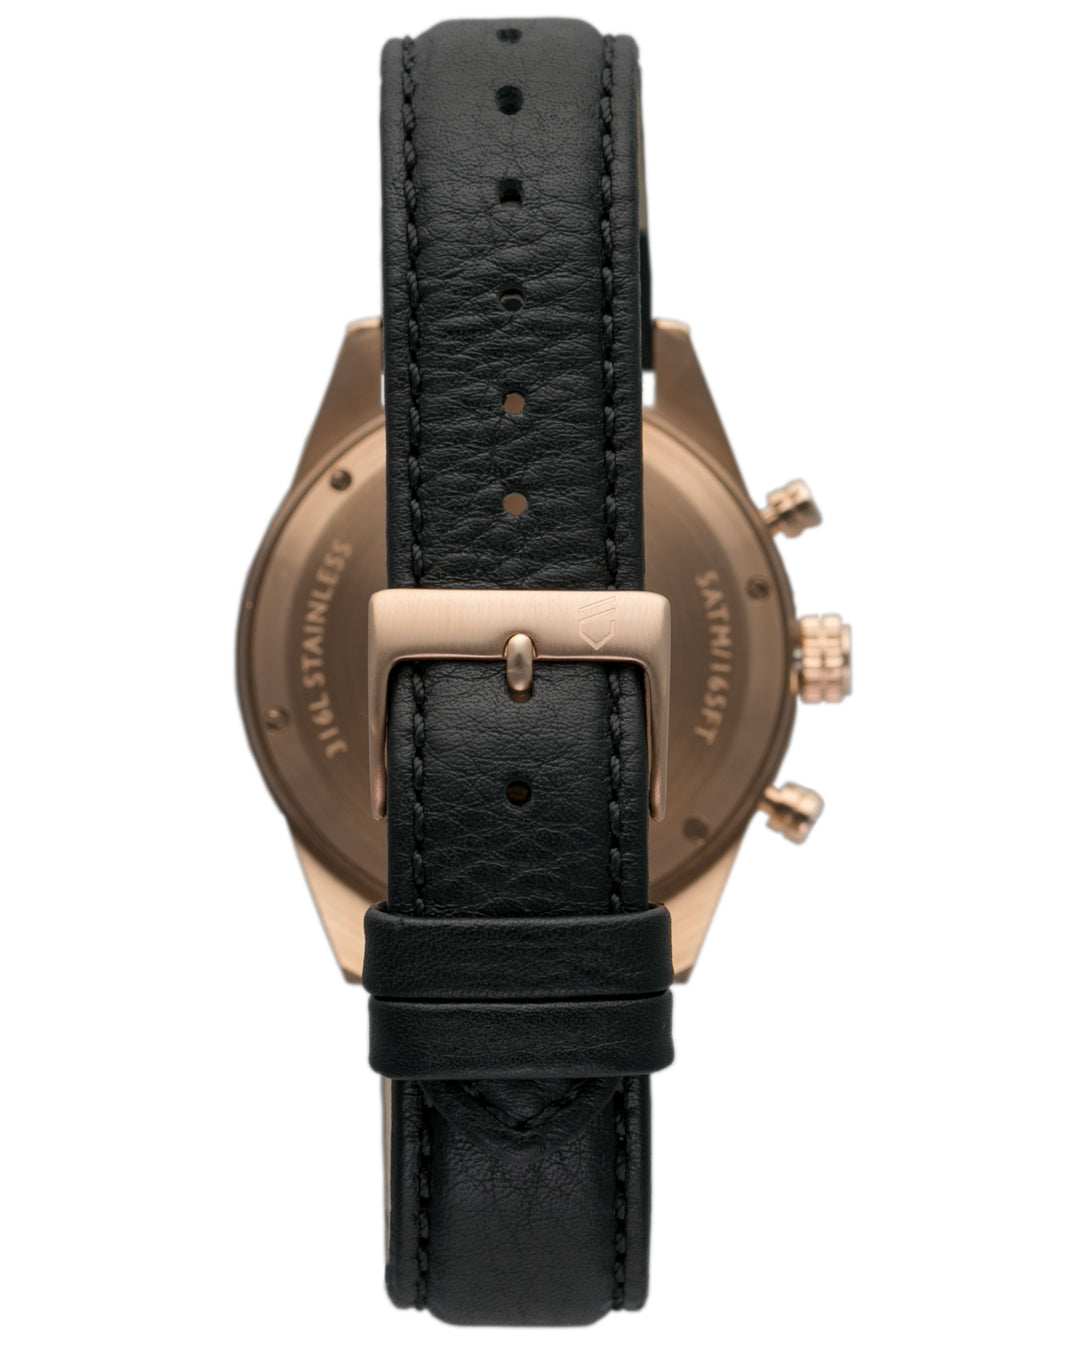 Italian leather watch strap with rose gold engraved buckle